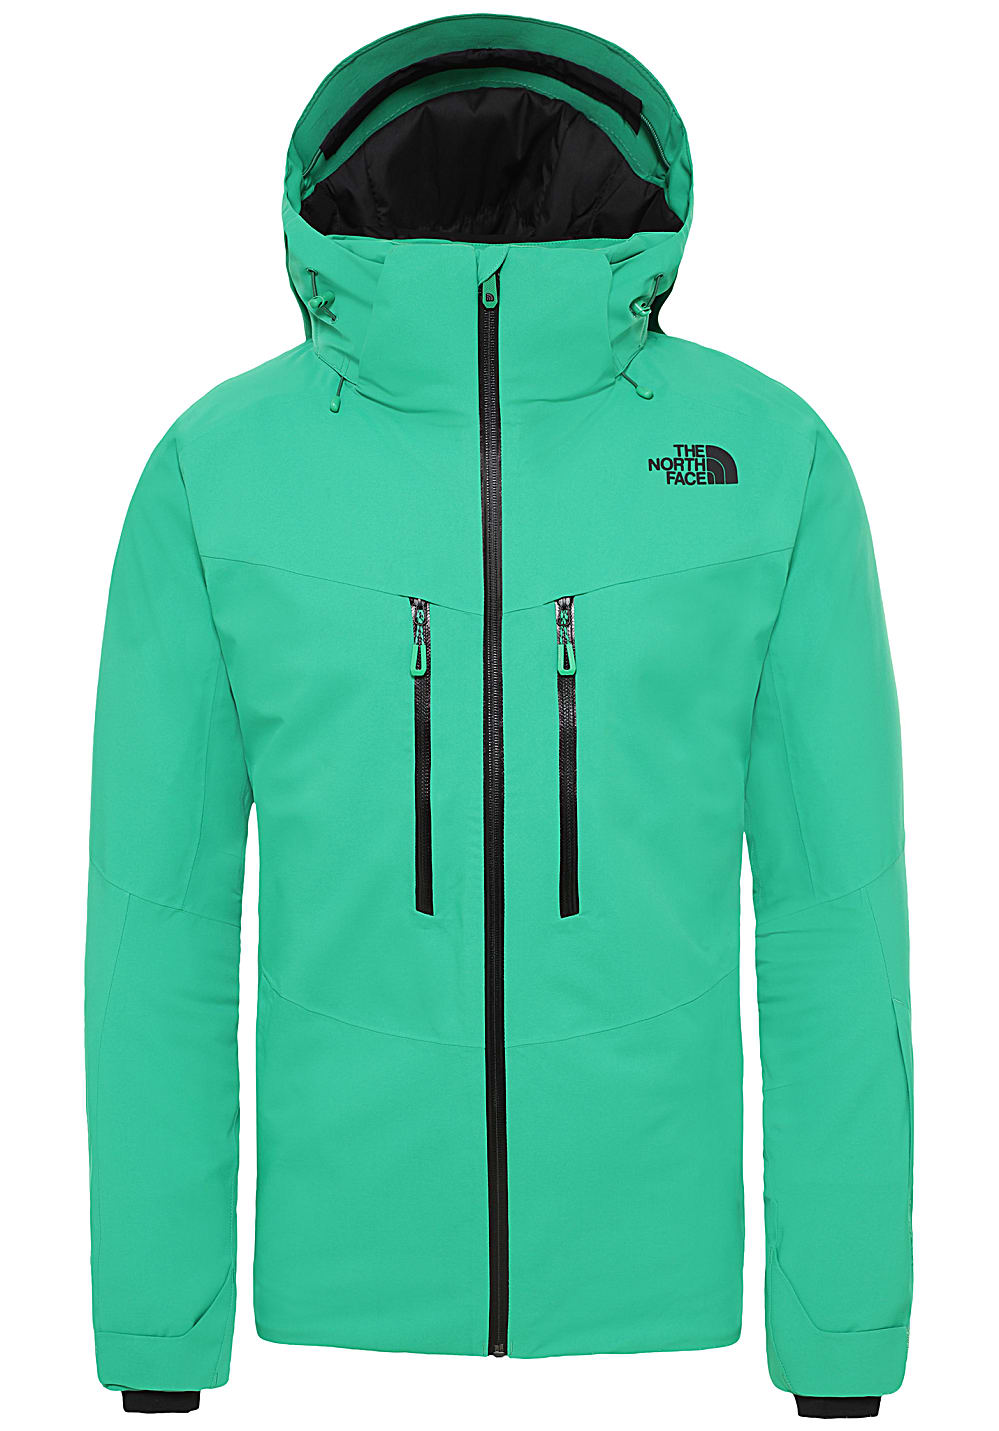 THE NORTH FACE Chakal Skijacke für Herren Grün